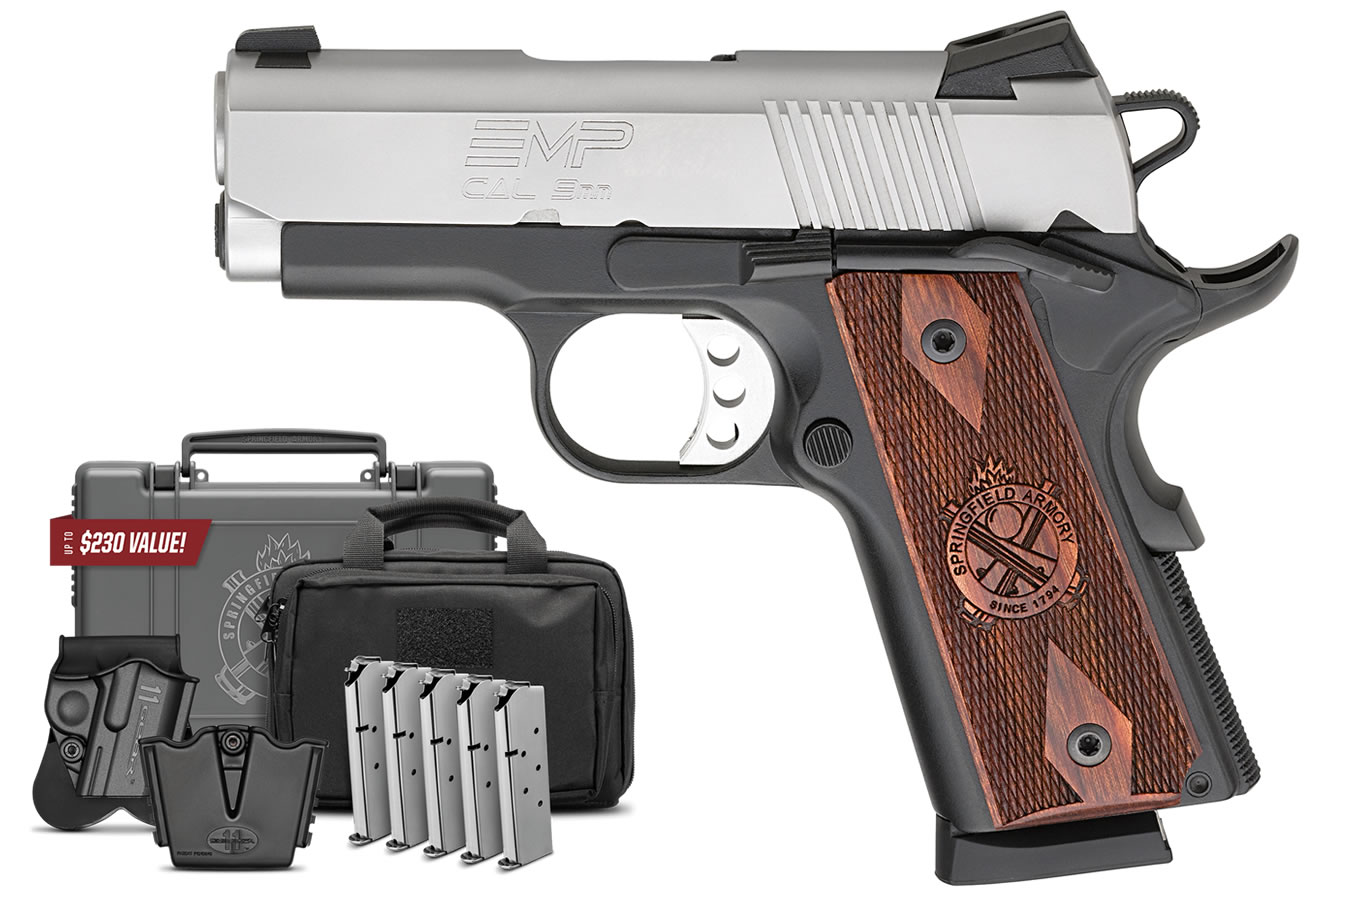 No. 7 Best Selling: SPRINGFIELD EMP COMPACT 9MM 3 IN LIGHT WEIGHT BBL SS SLIDE GEAR UP PACKAGE